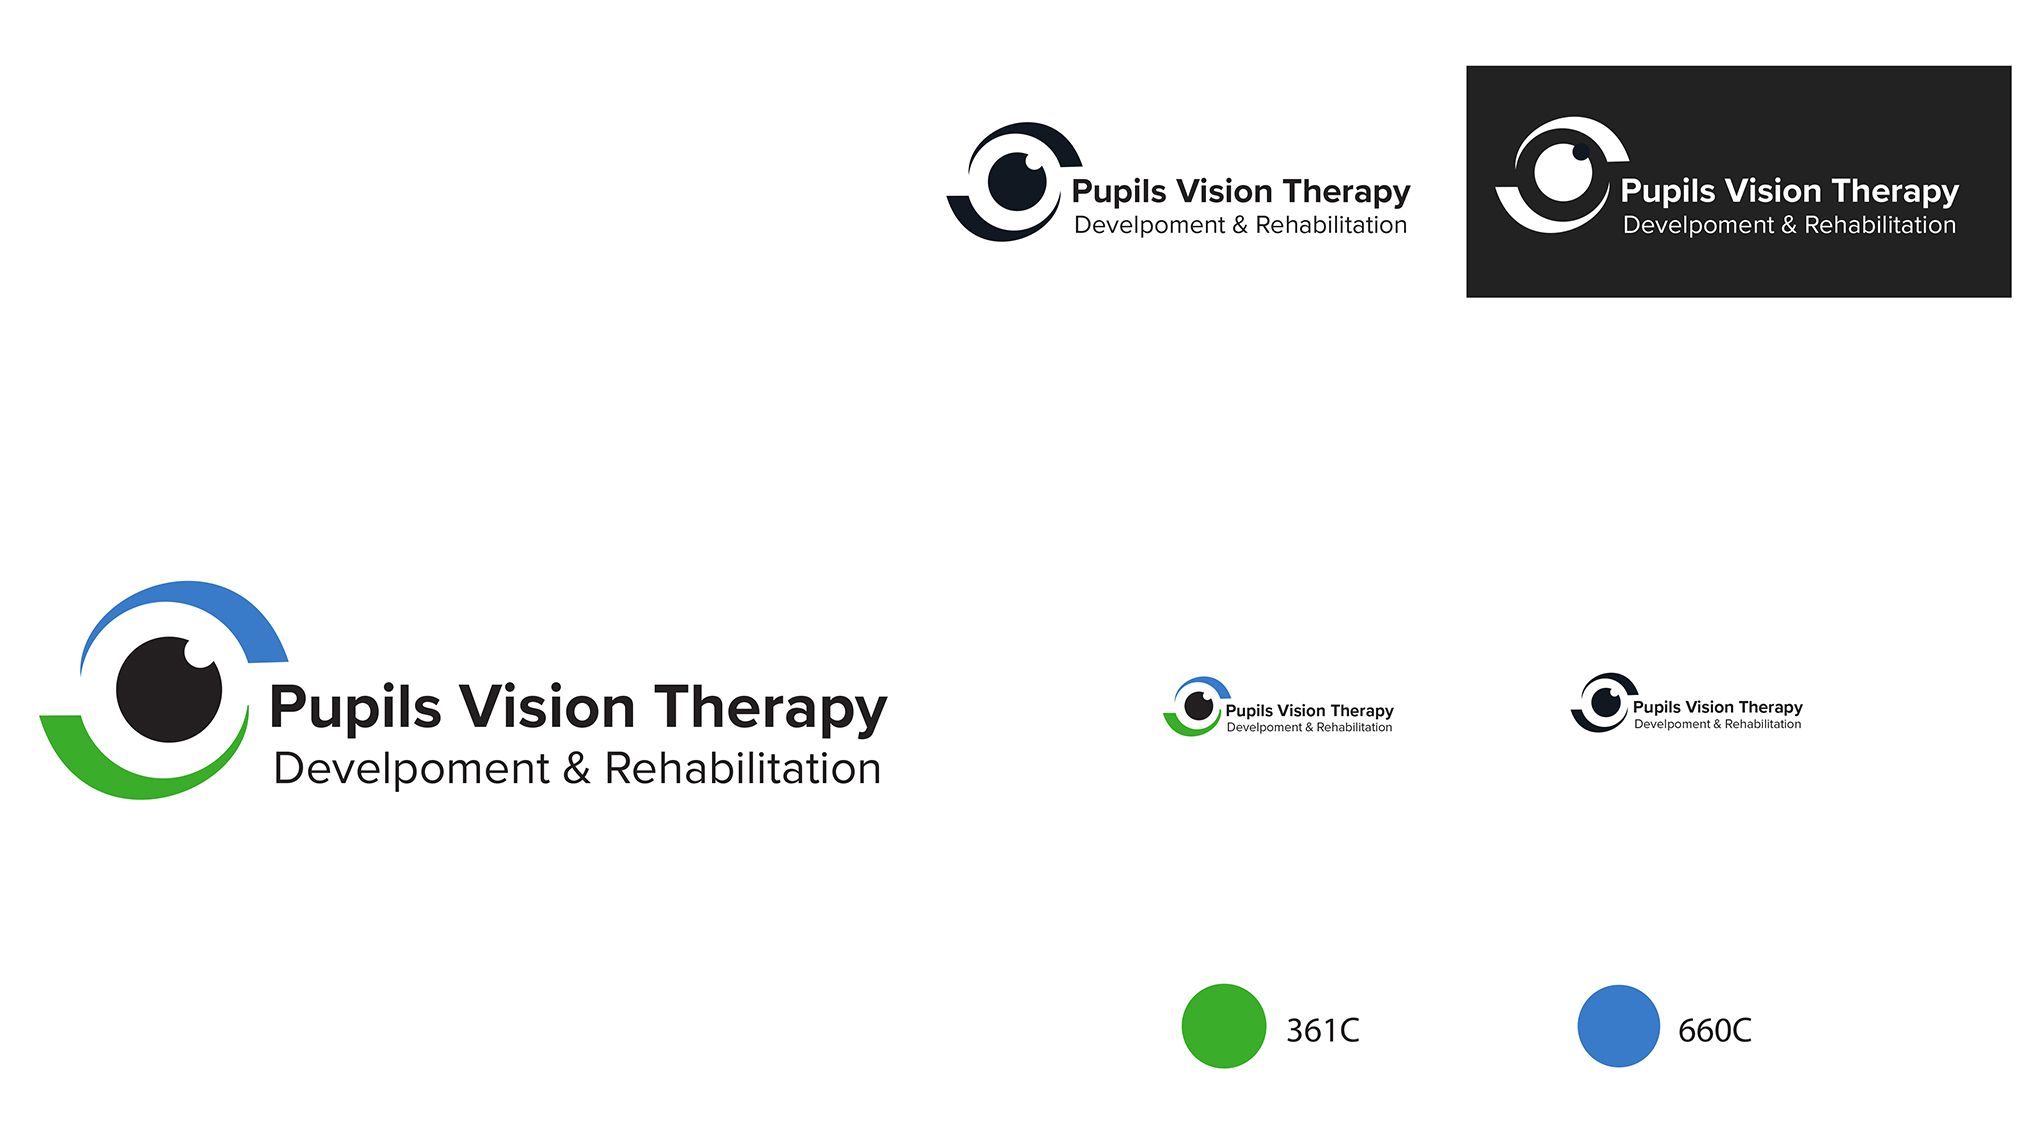 In January of 2020 we were given a  class assignment; we were tasked to redesign a company's logo. From there we drew sketches, choose colors that represented the brand, created mock ups, and from there presented the logo to the client.I decided to go with Pupils Vision Therapy - they are a vision therapy provider located in Ottawa, Ontario.